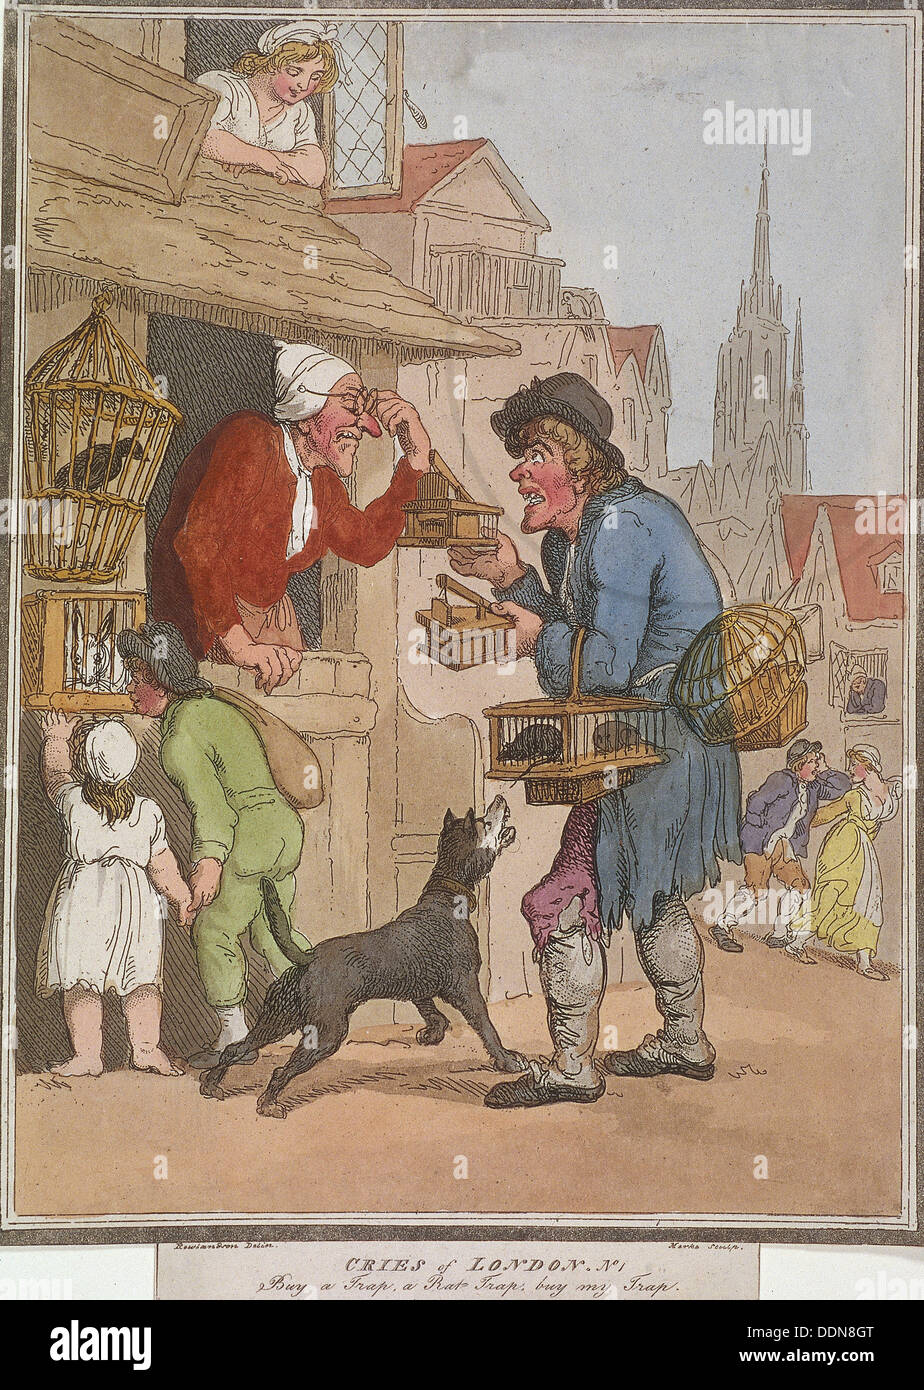 'Buy a Trap, a Rat Trap, buy my Trap', plate I of Cries of London, 1799. Artist: H Merke - Stock Image